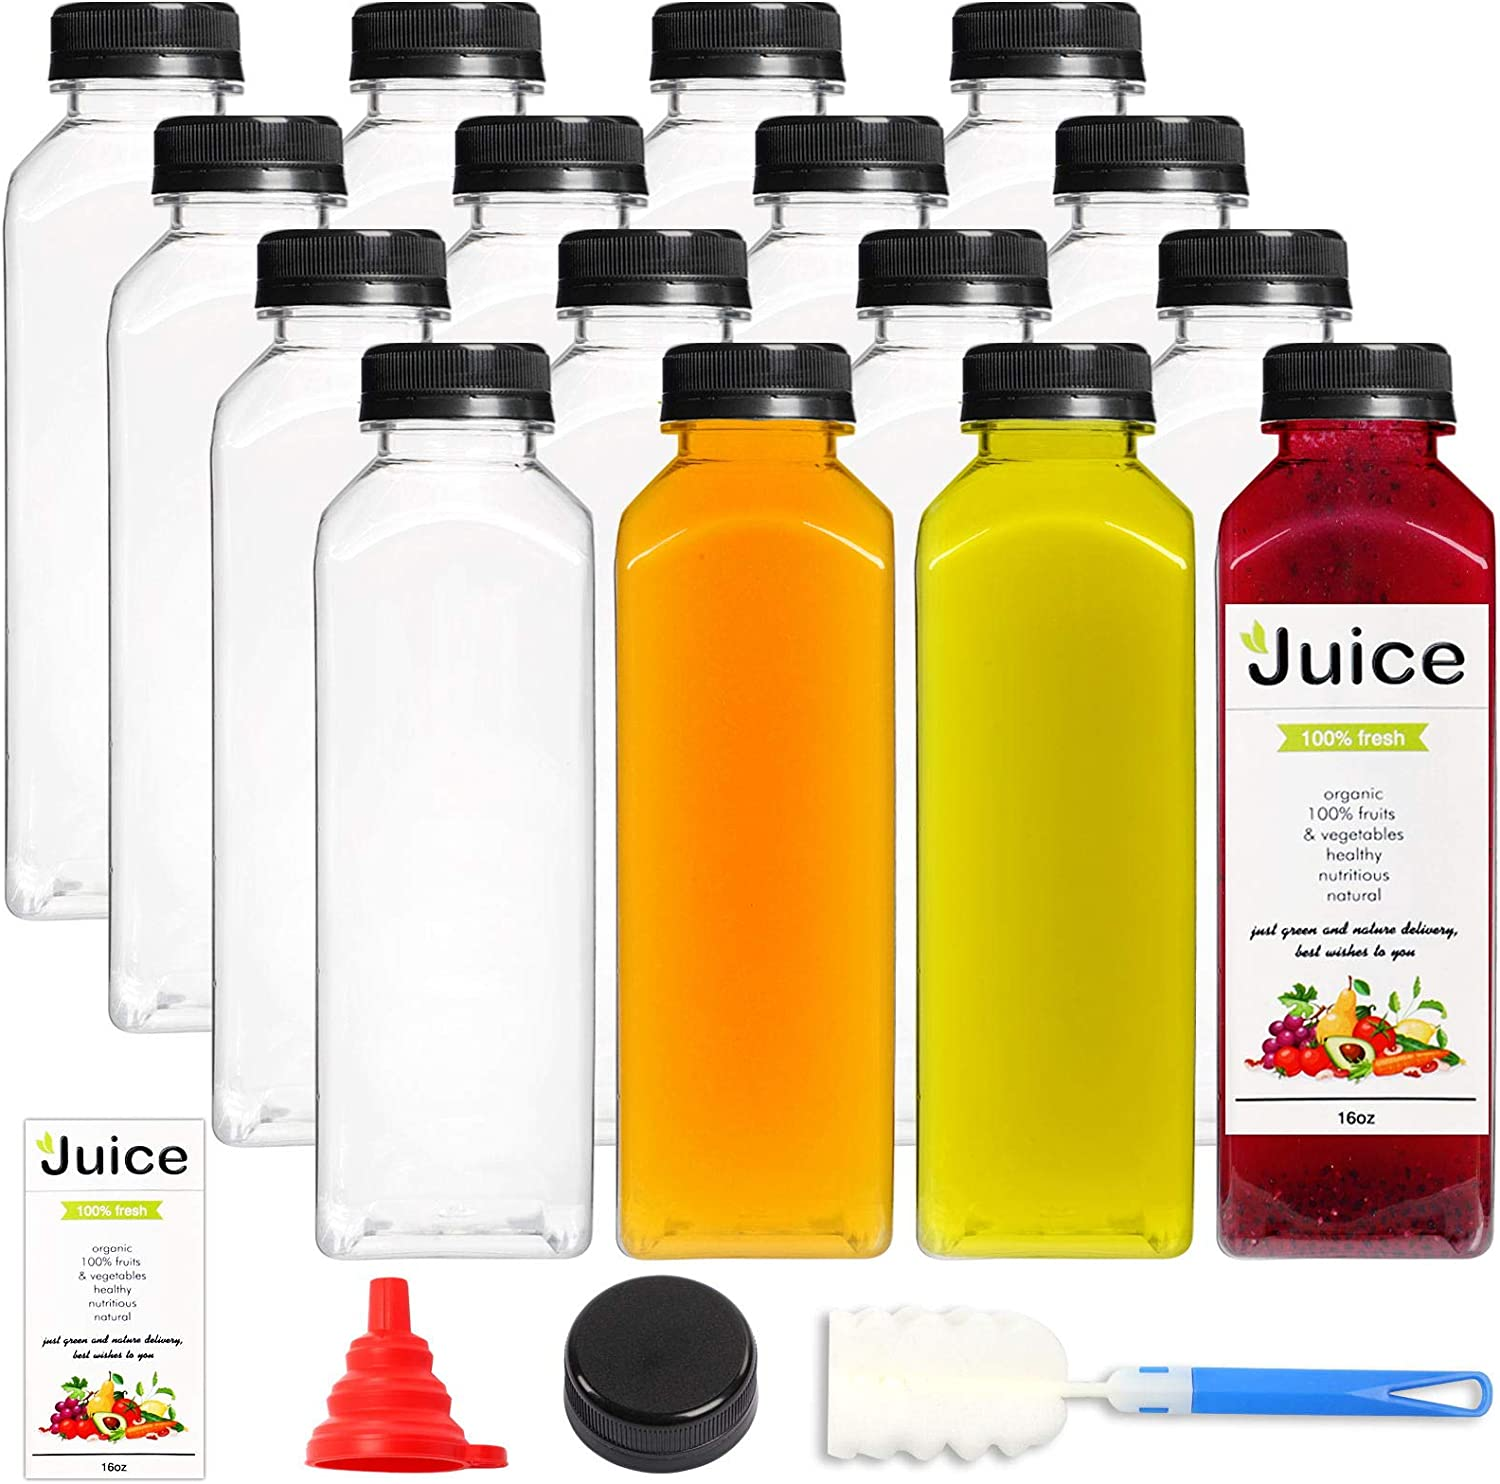 16pcs 16oz Empty Plastic Juice Bottles with caps, Reusable Clear Bulk Beverage Containers for Juice, Milk and Other Beverages